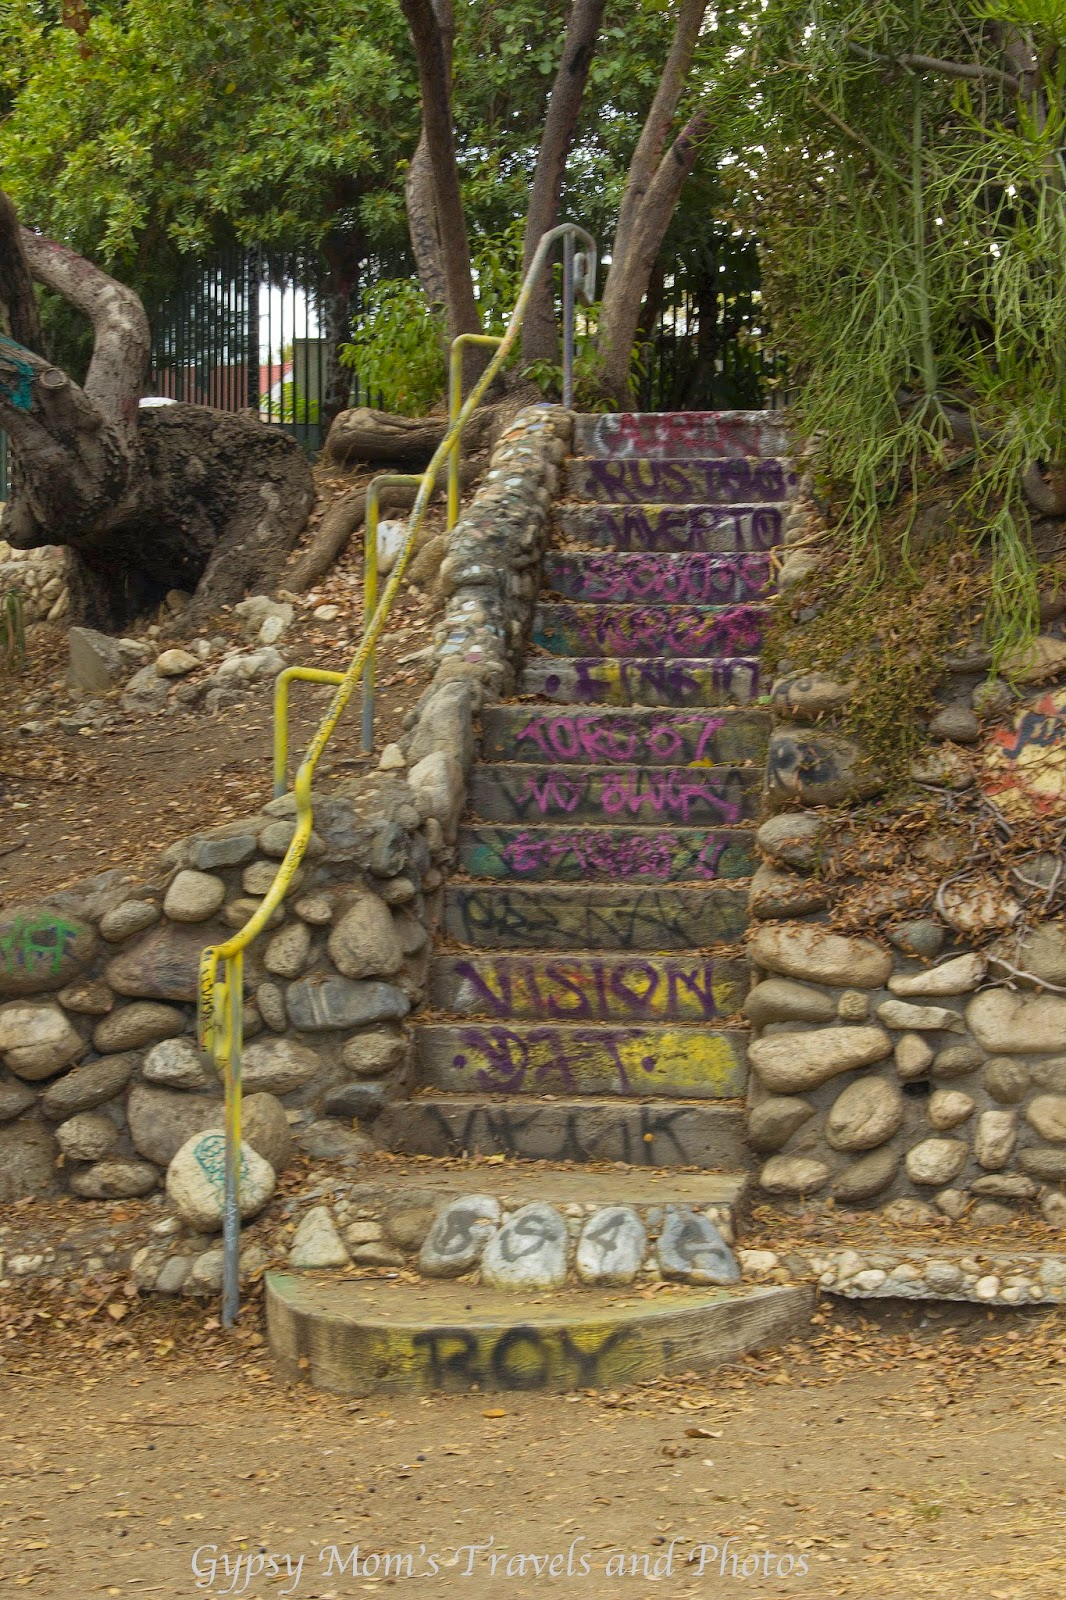 Staircase with graffiti in La Tierra de la Culebra Park